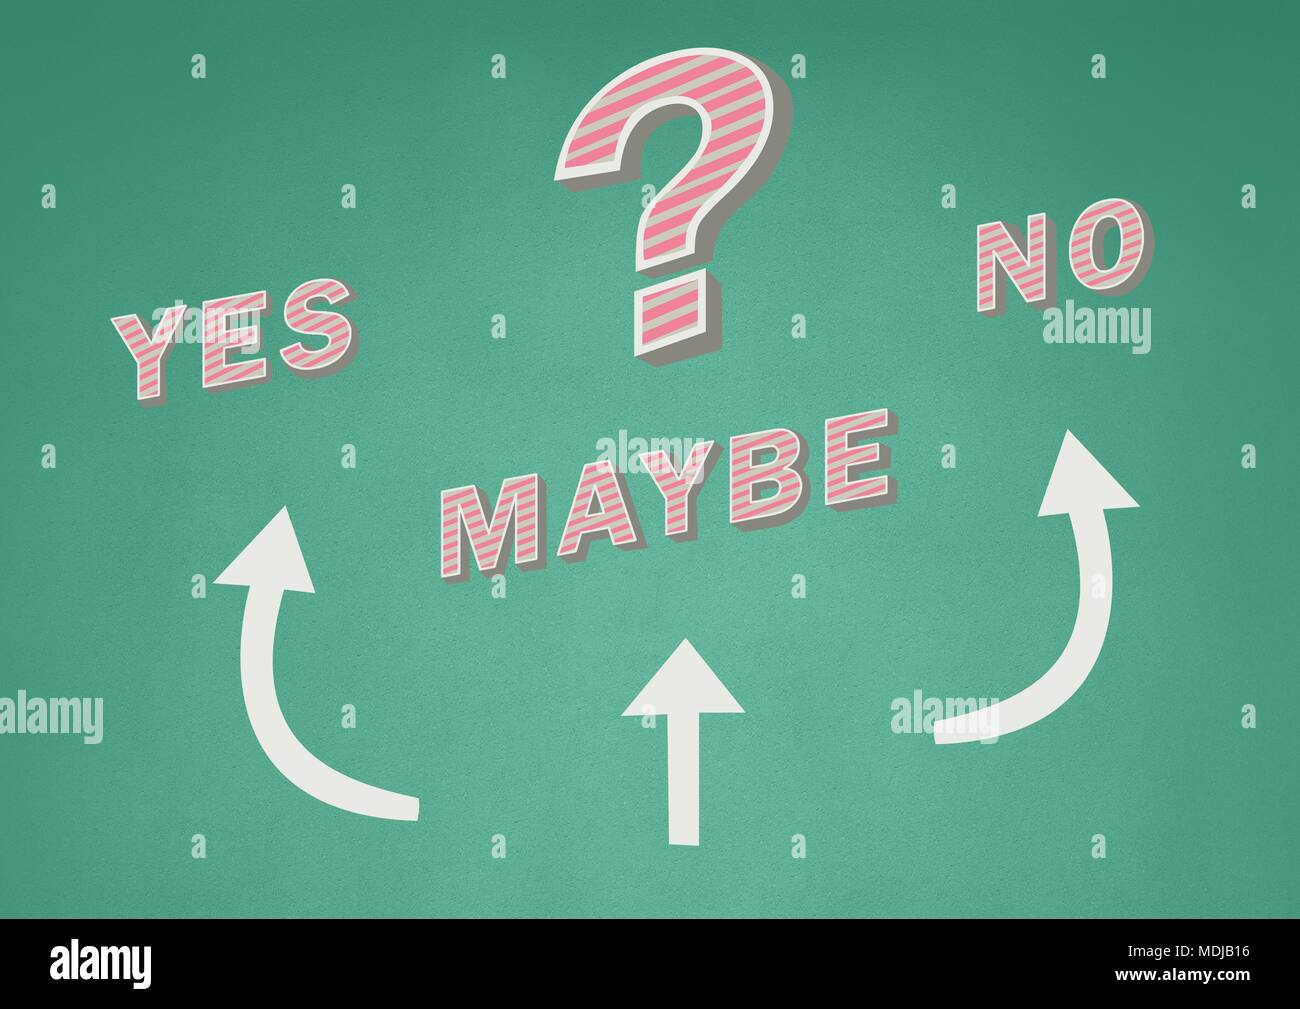 Yes No Maybe text with arrows graphic on wall - Stock Image